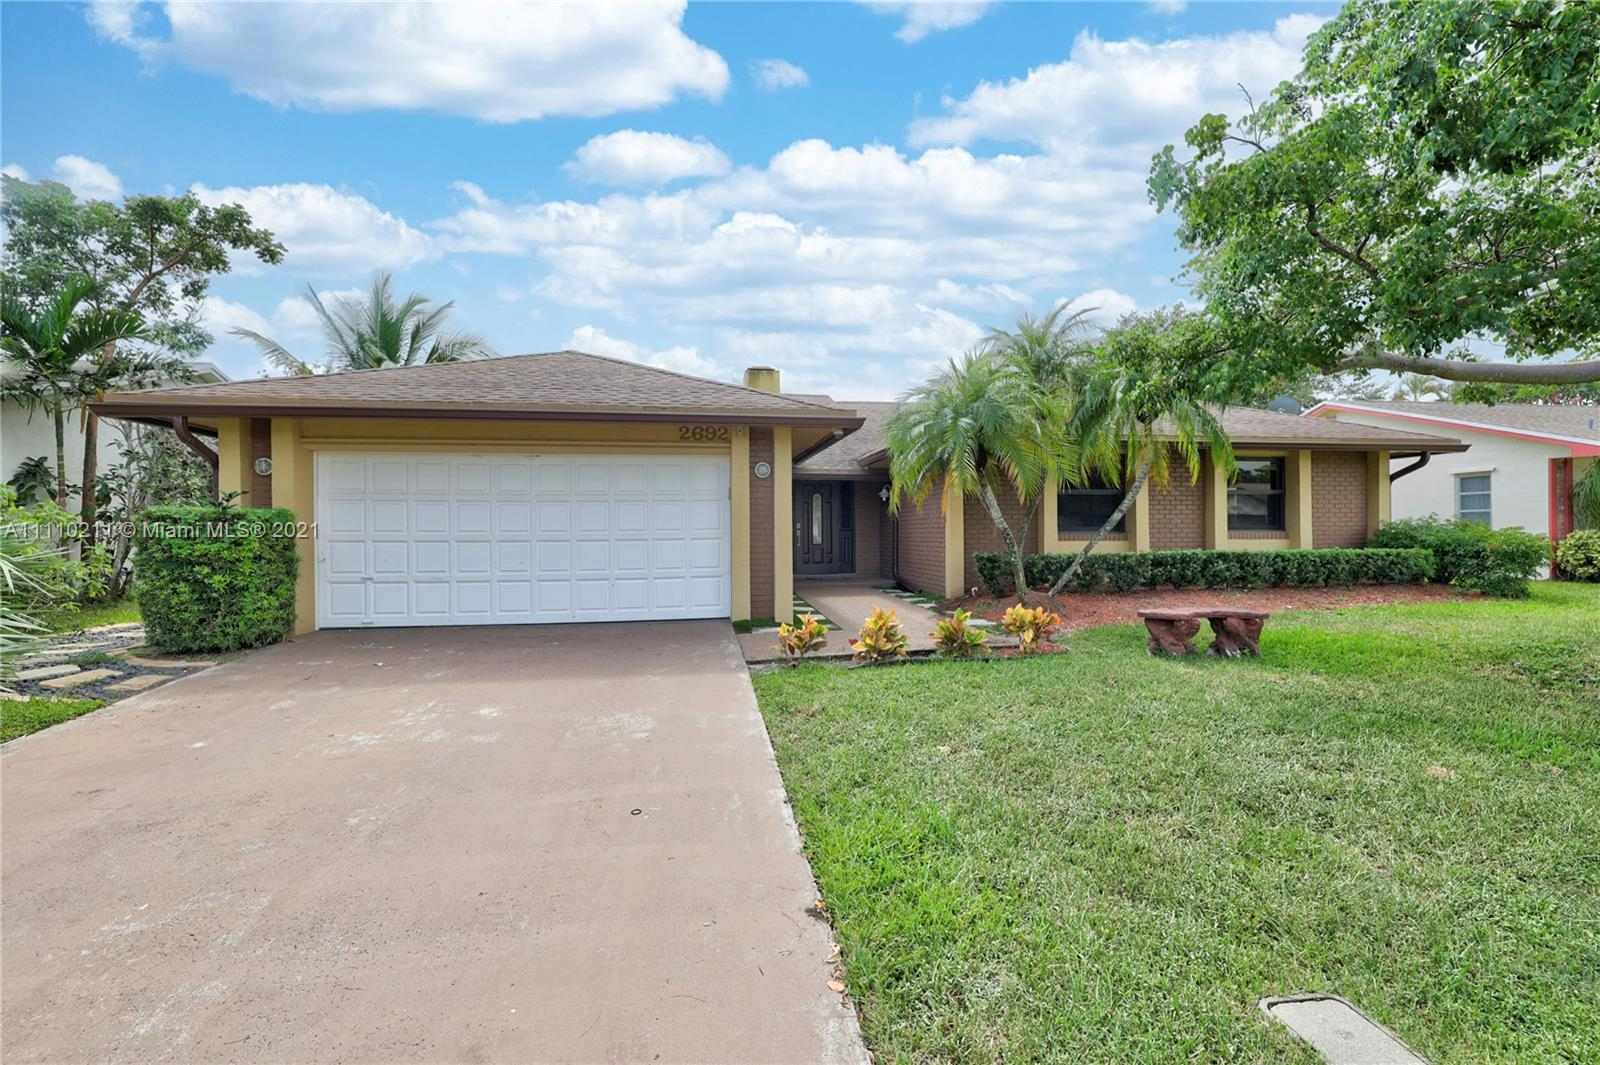 This is the GORGEOUS home you've been waiting for! Completely renovated from top to bottom!! Located